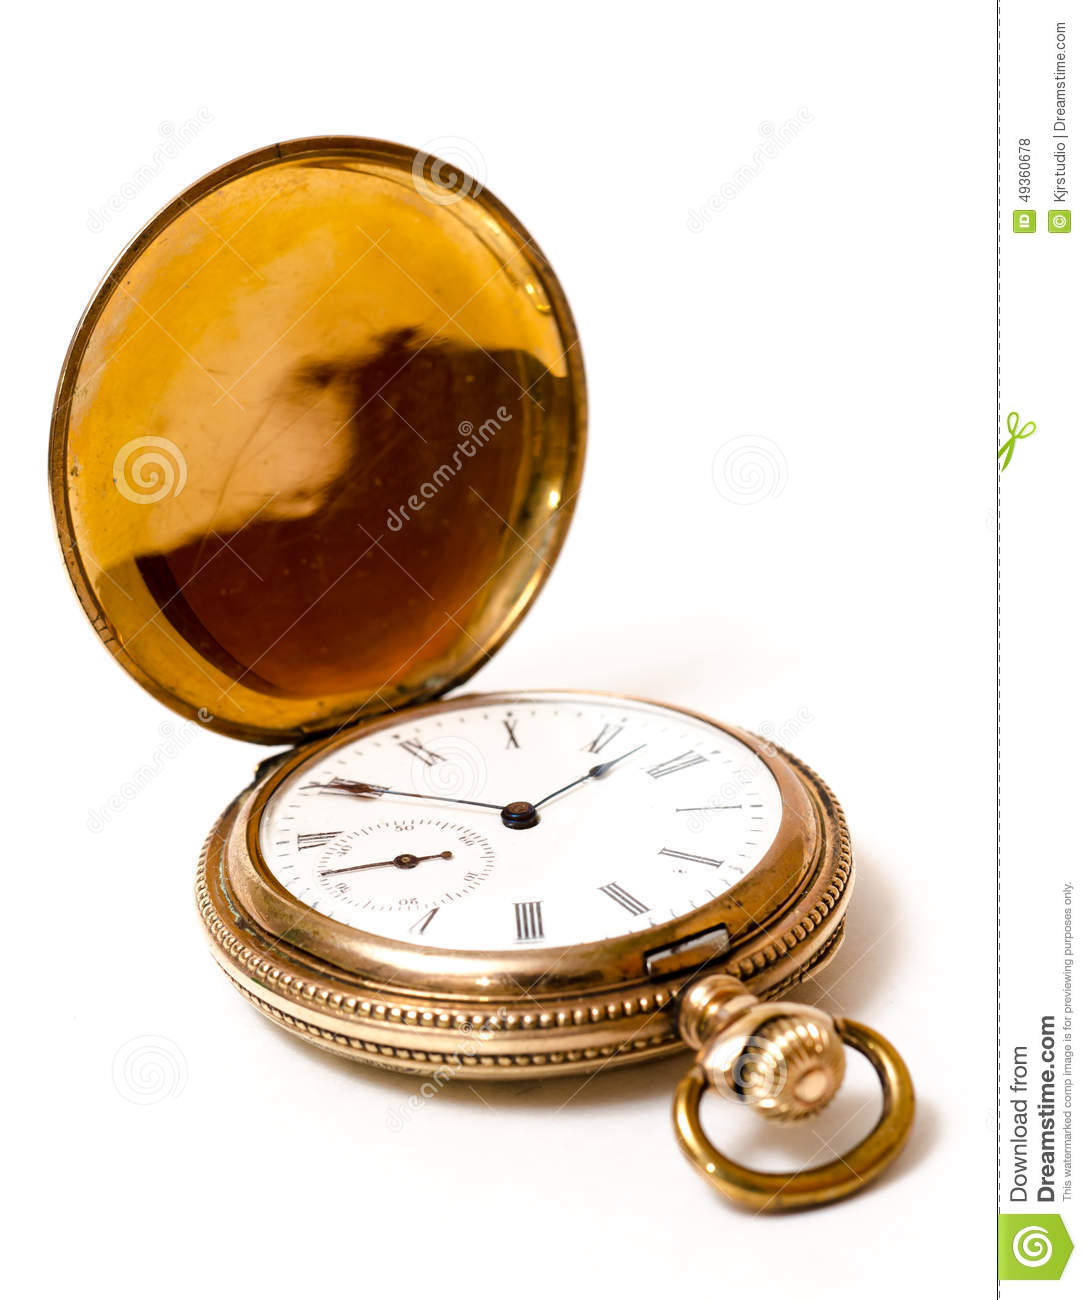 Retirement Pocket Watch Stock Photo